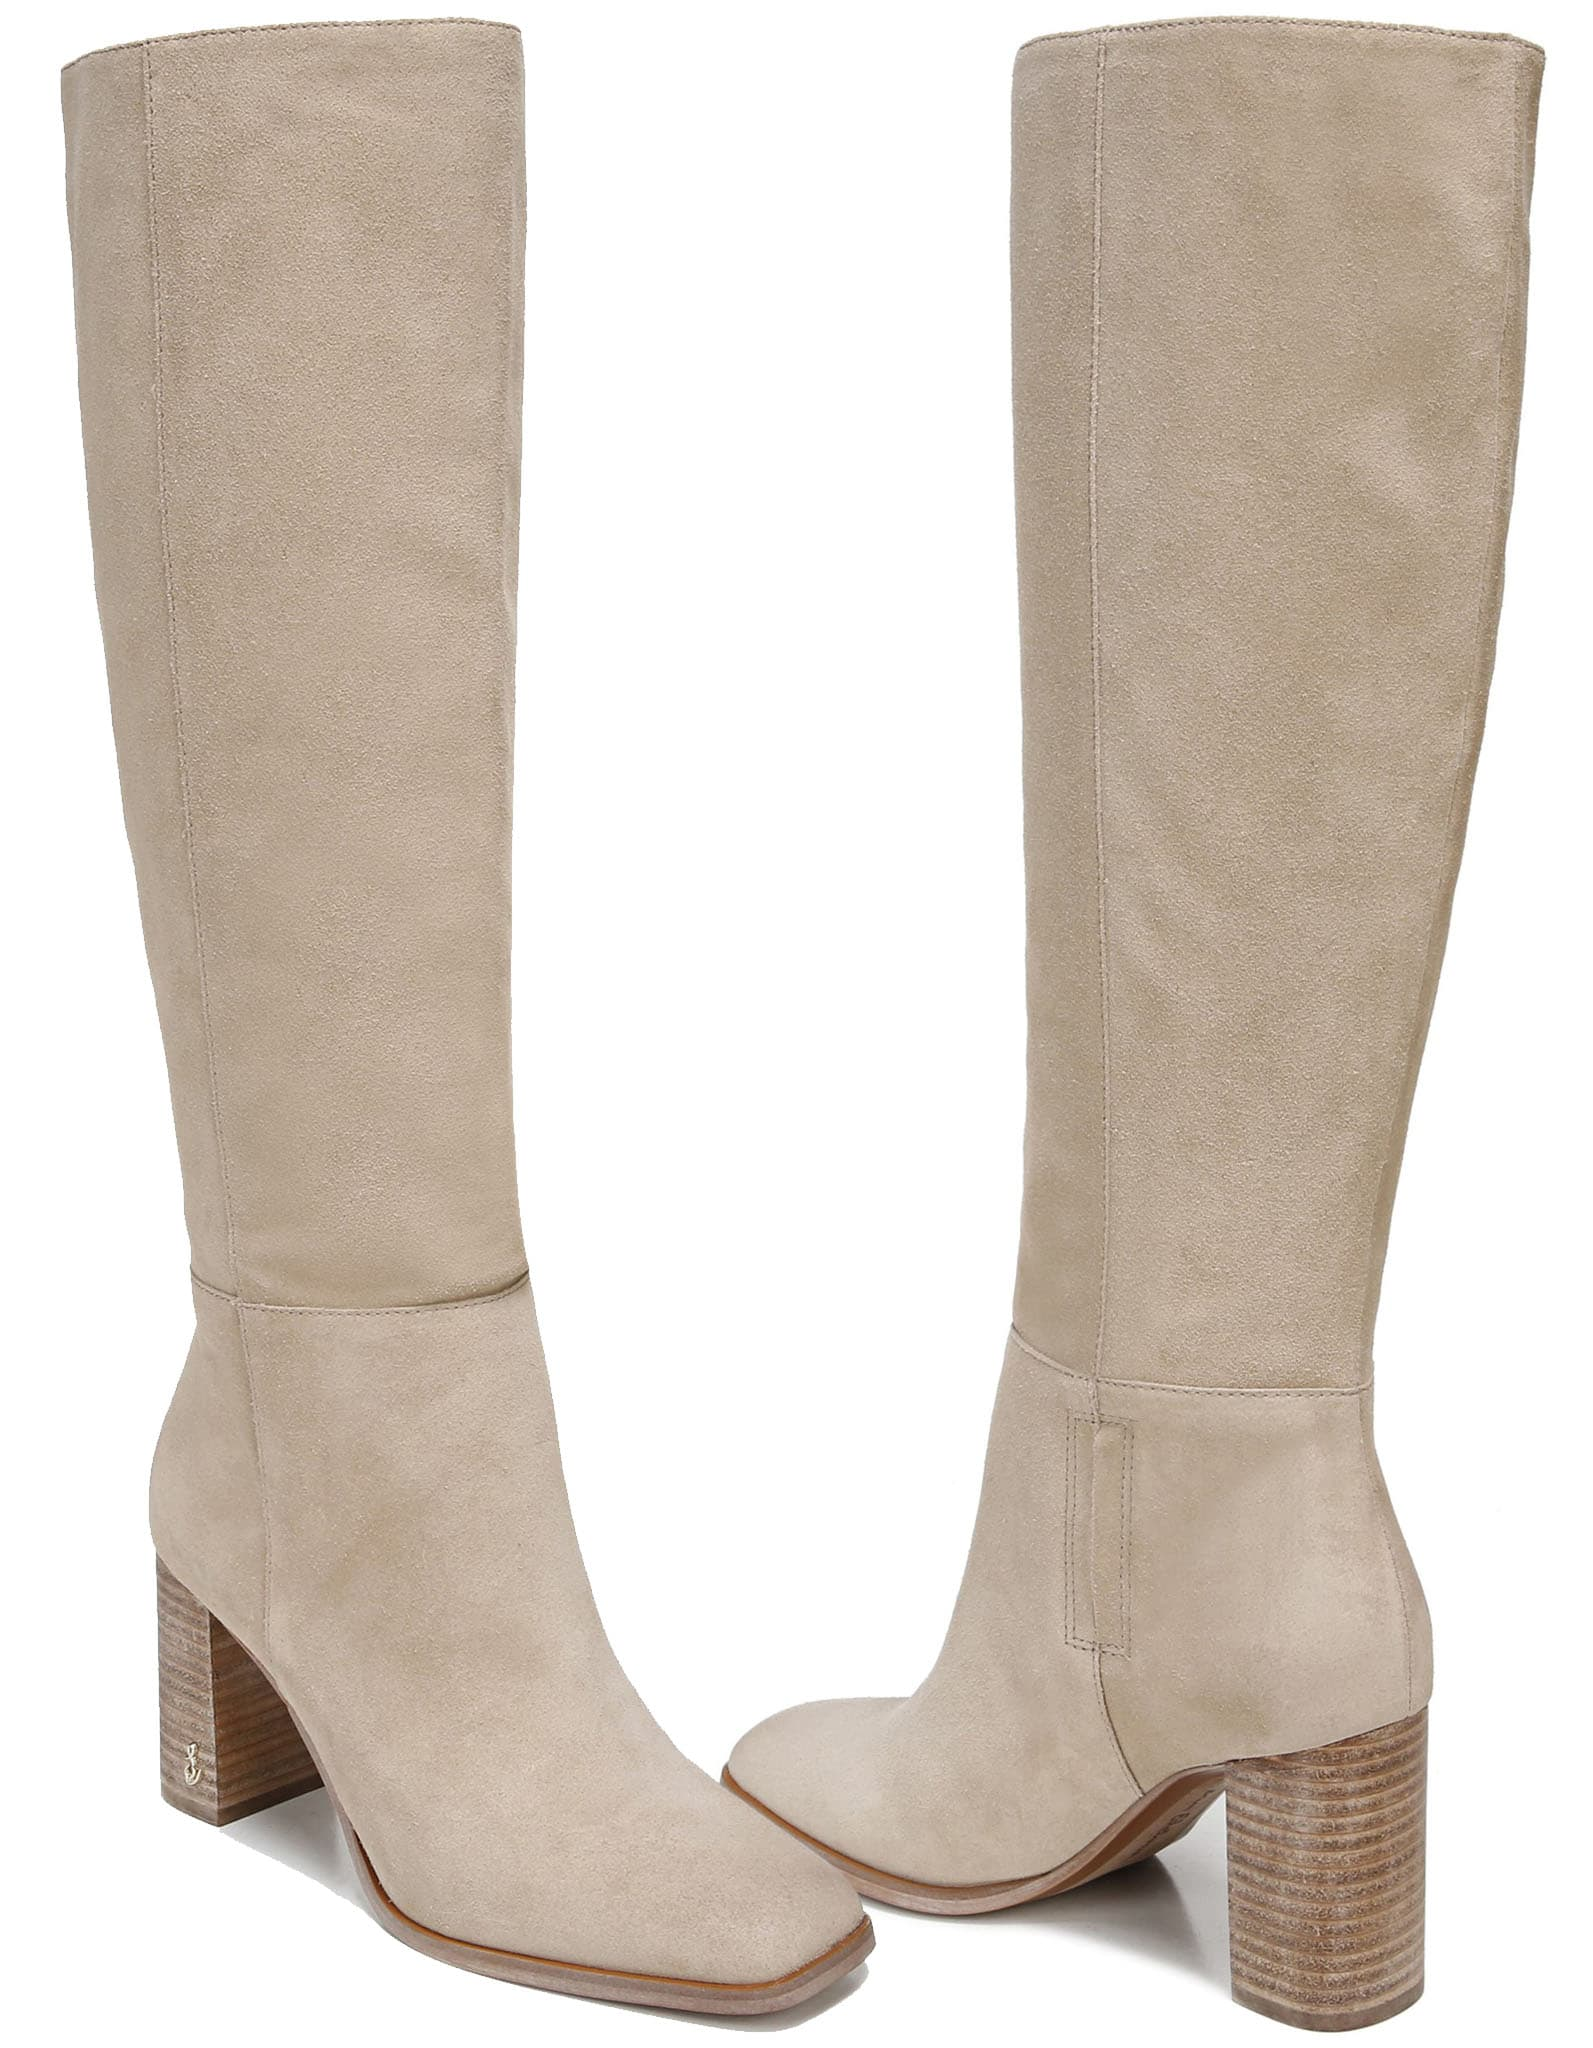 Square toes bring a contemporary look to these supple knee-high boots that feature a streamlined silhouette